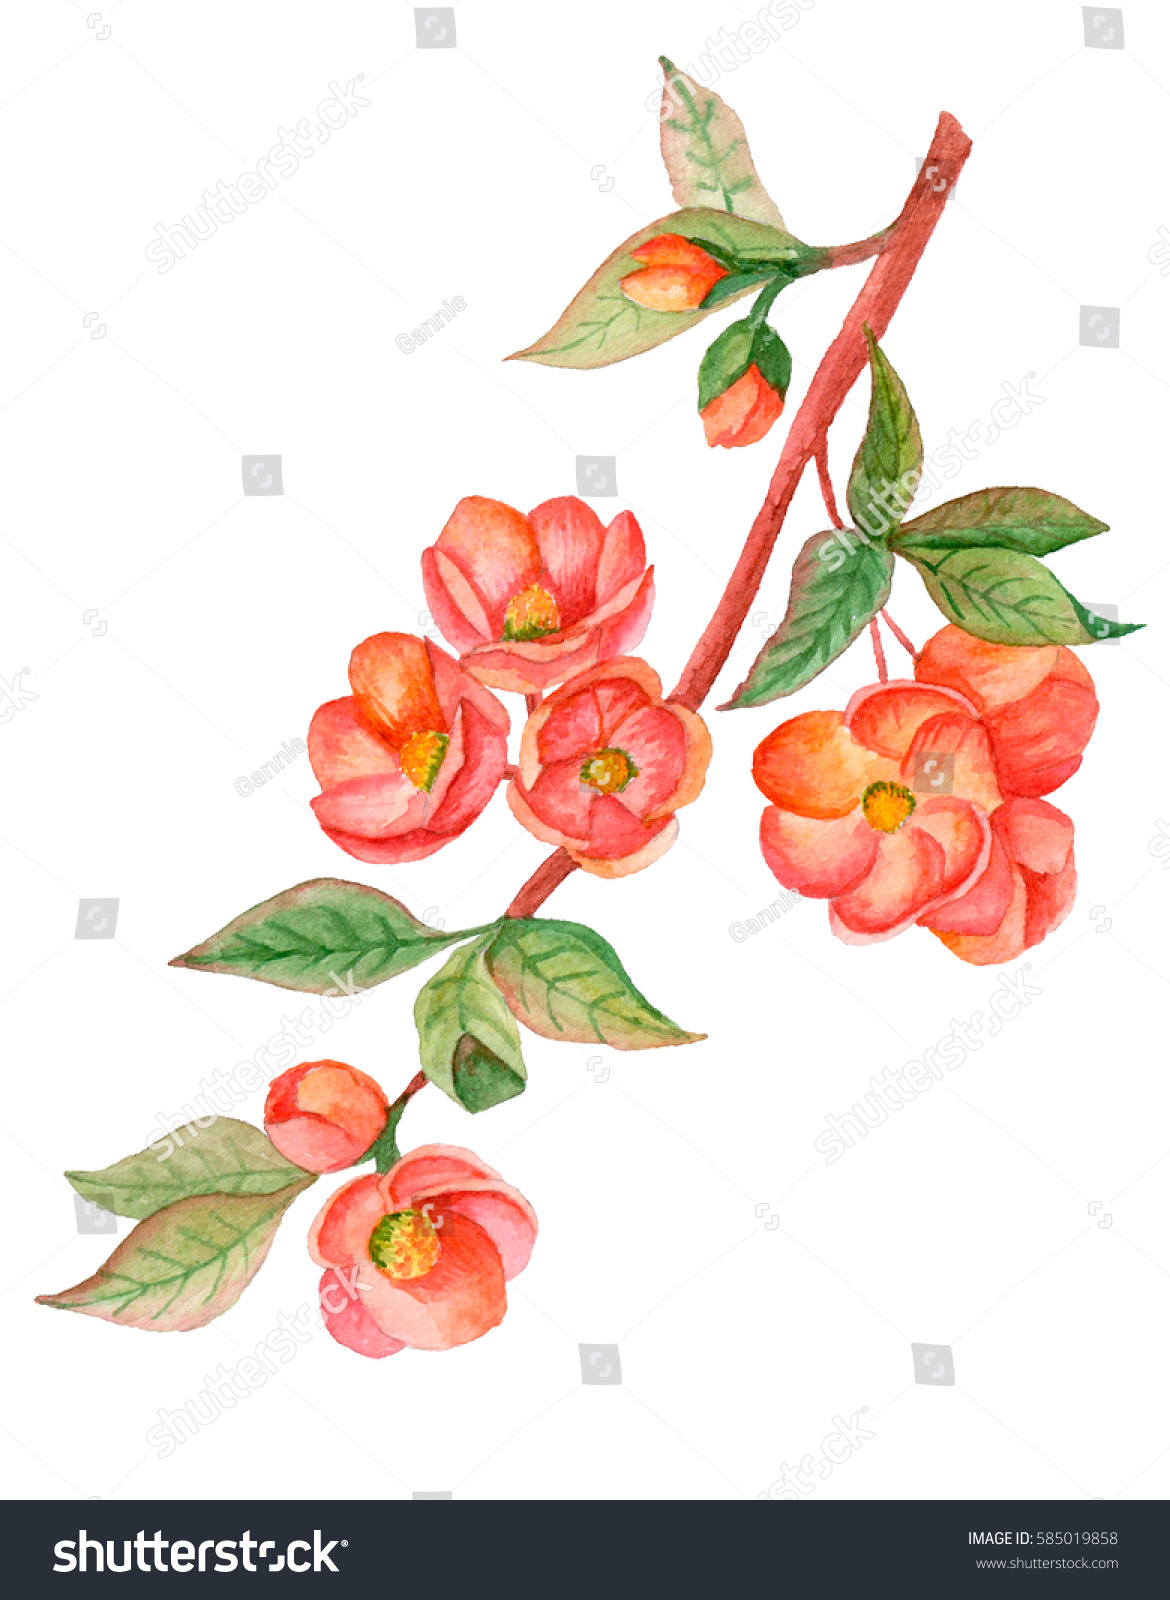 Watercolor illustration japanese quince blossom hand stock watercolor illustration of japanese quince in blossom hand drawn blooming branch isolated on white background biocorpaavc Image collections